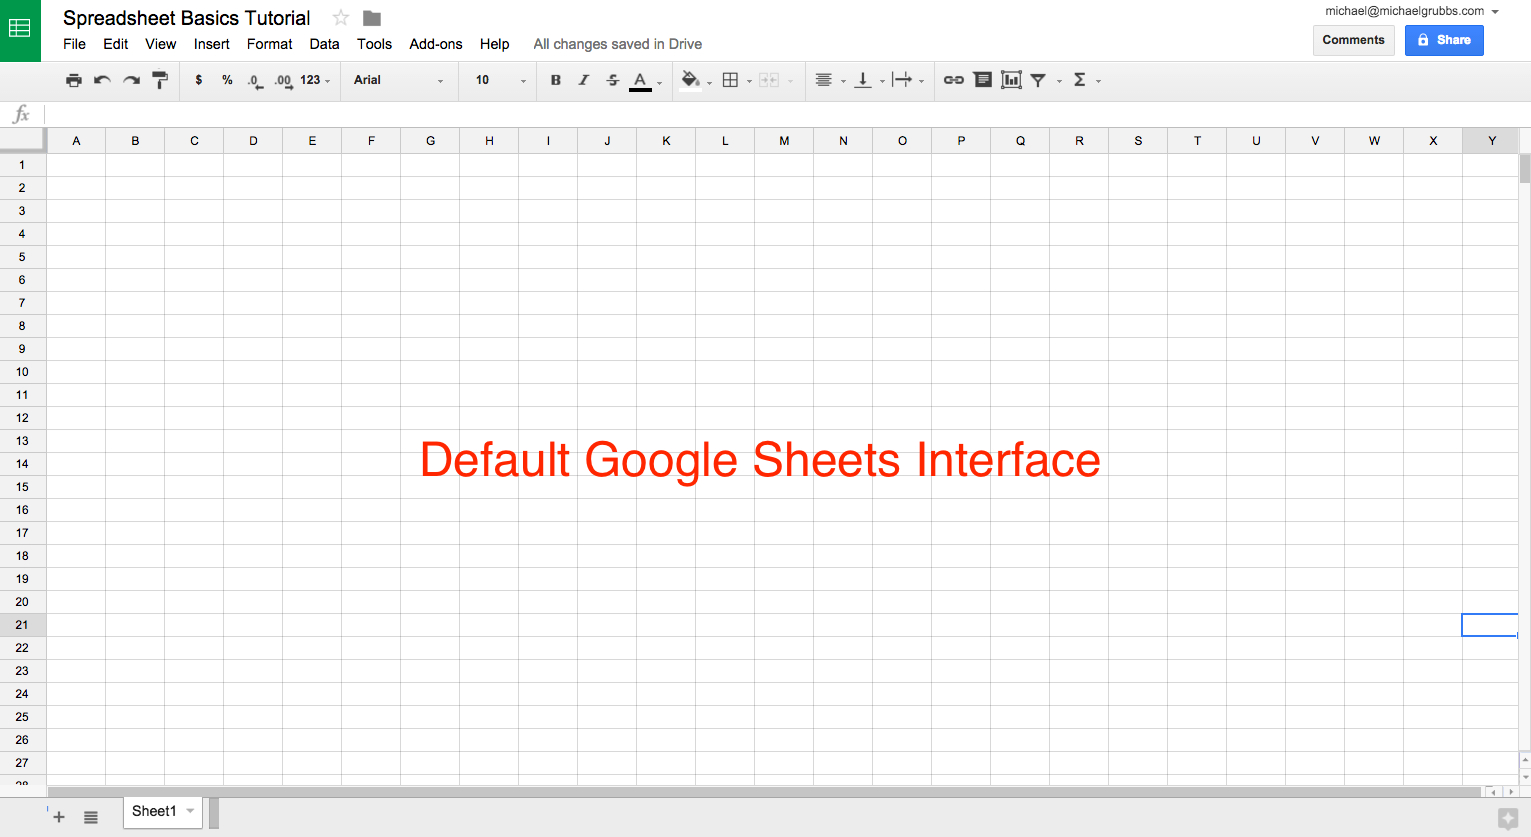 How To Make A Spreadsheet On Google For Google Sheets 101: The Beginner's Guide To Online Spreadsheets  The